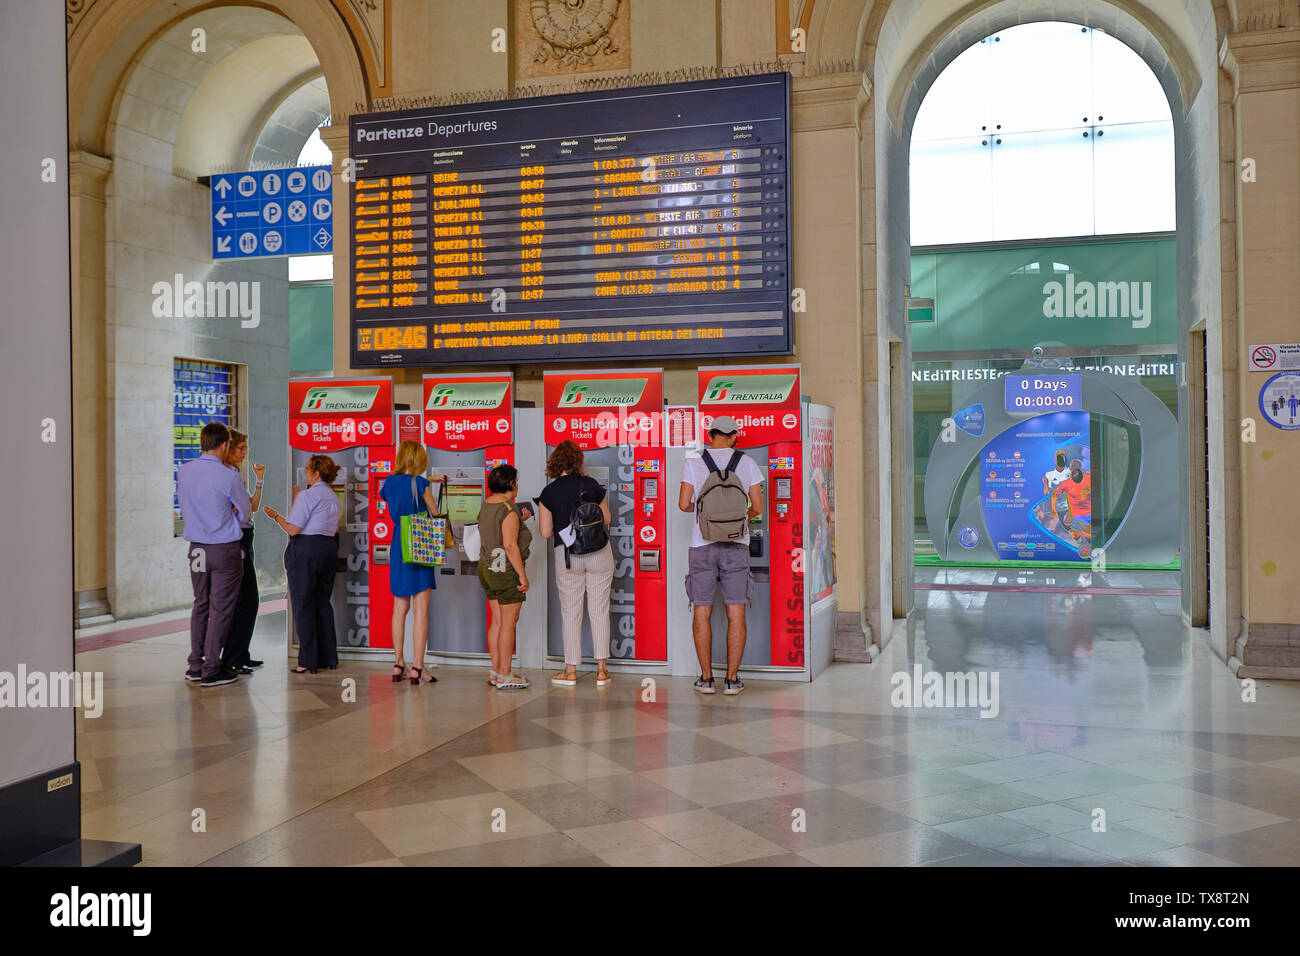 Customers purchasing train tickets from automated machine below the train departure board.  Trieste, Italy, June 17, 2019 Stock Photo